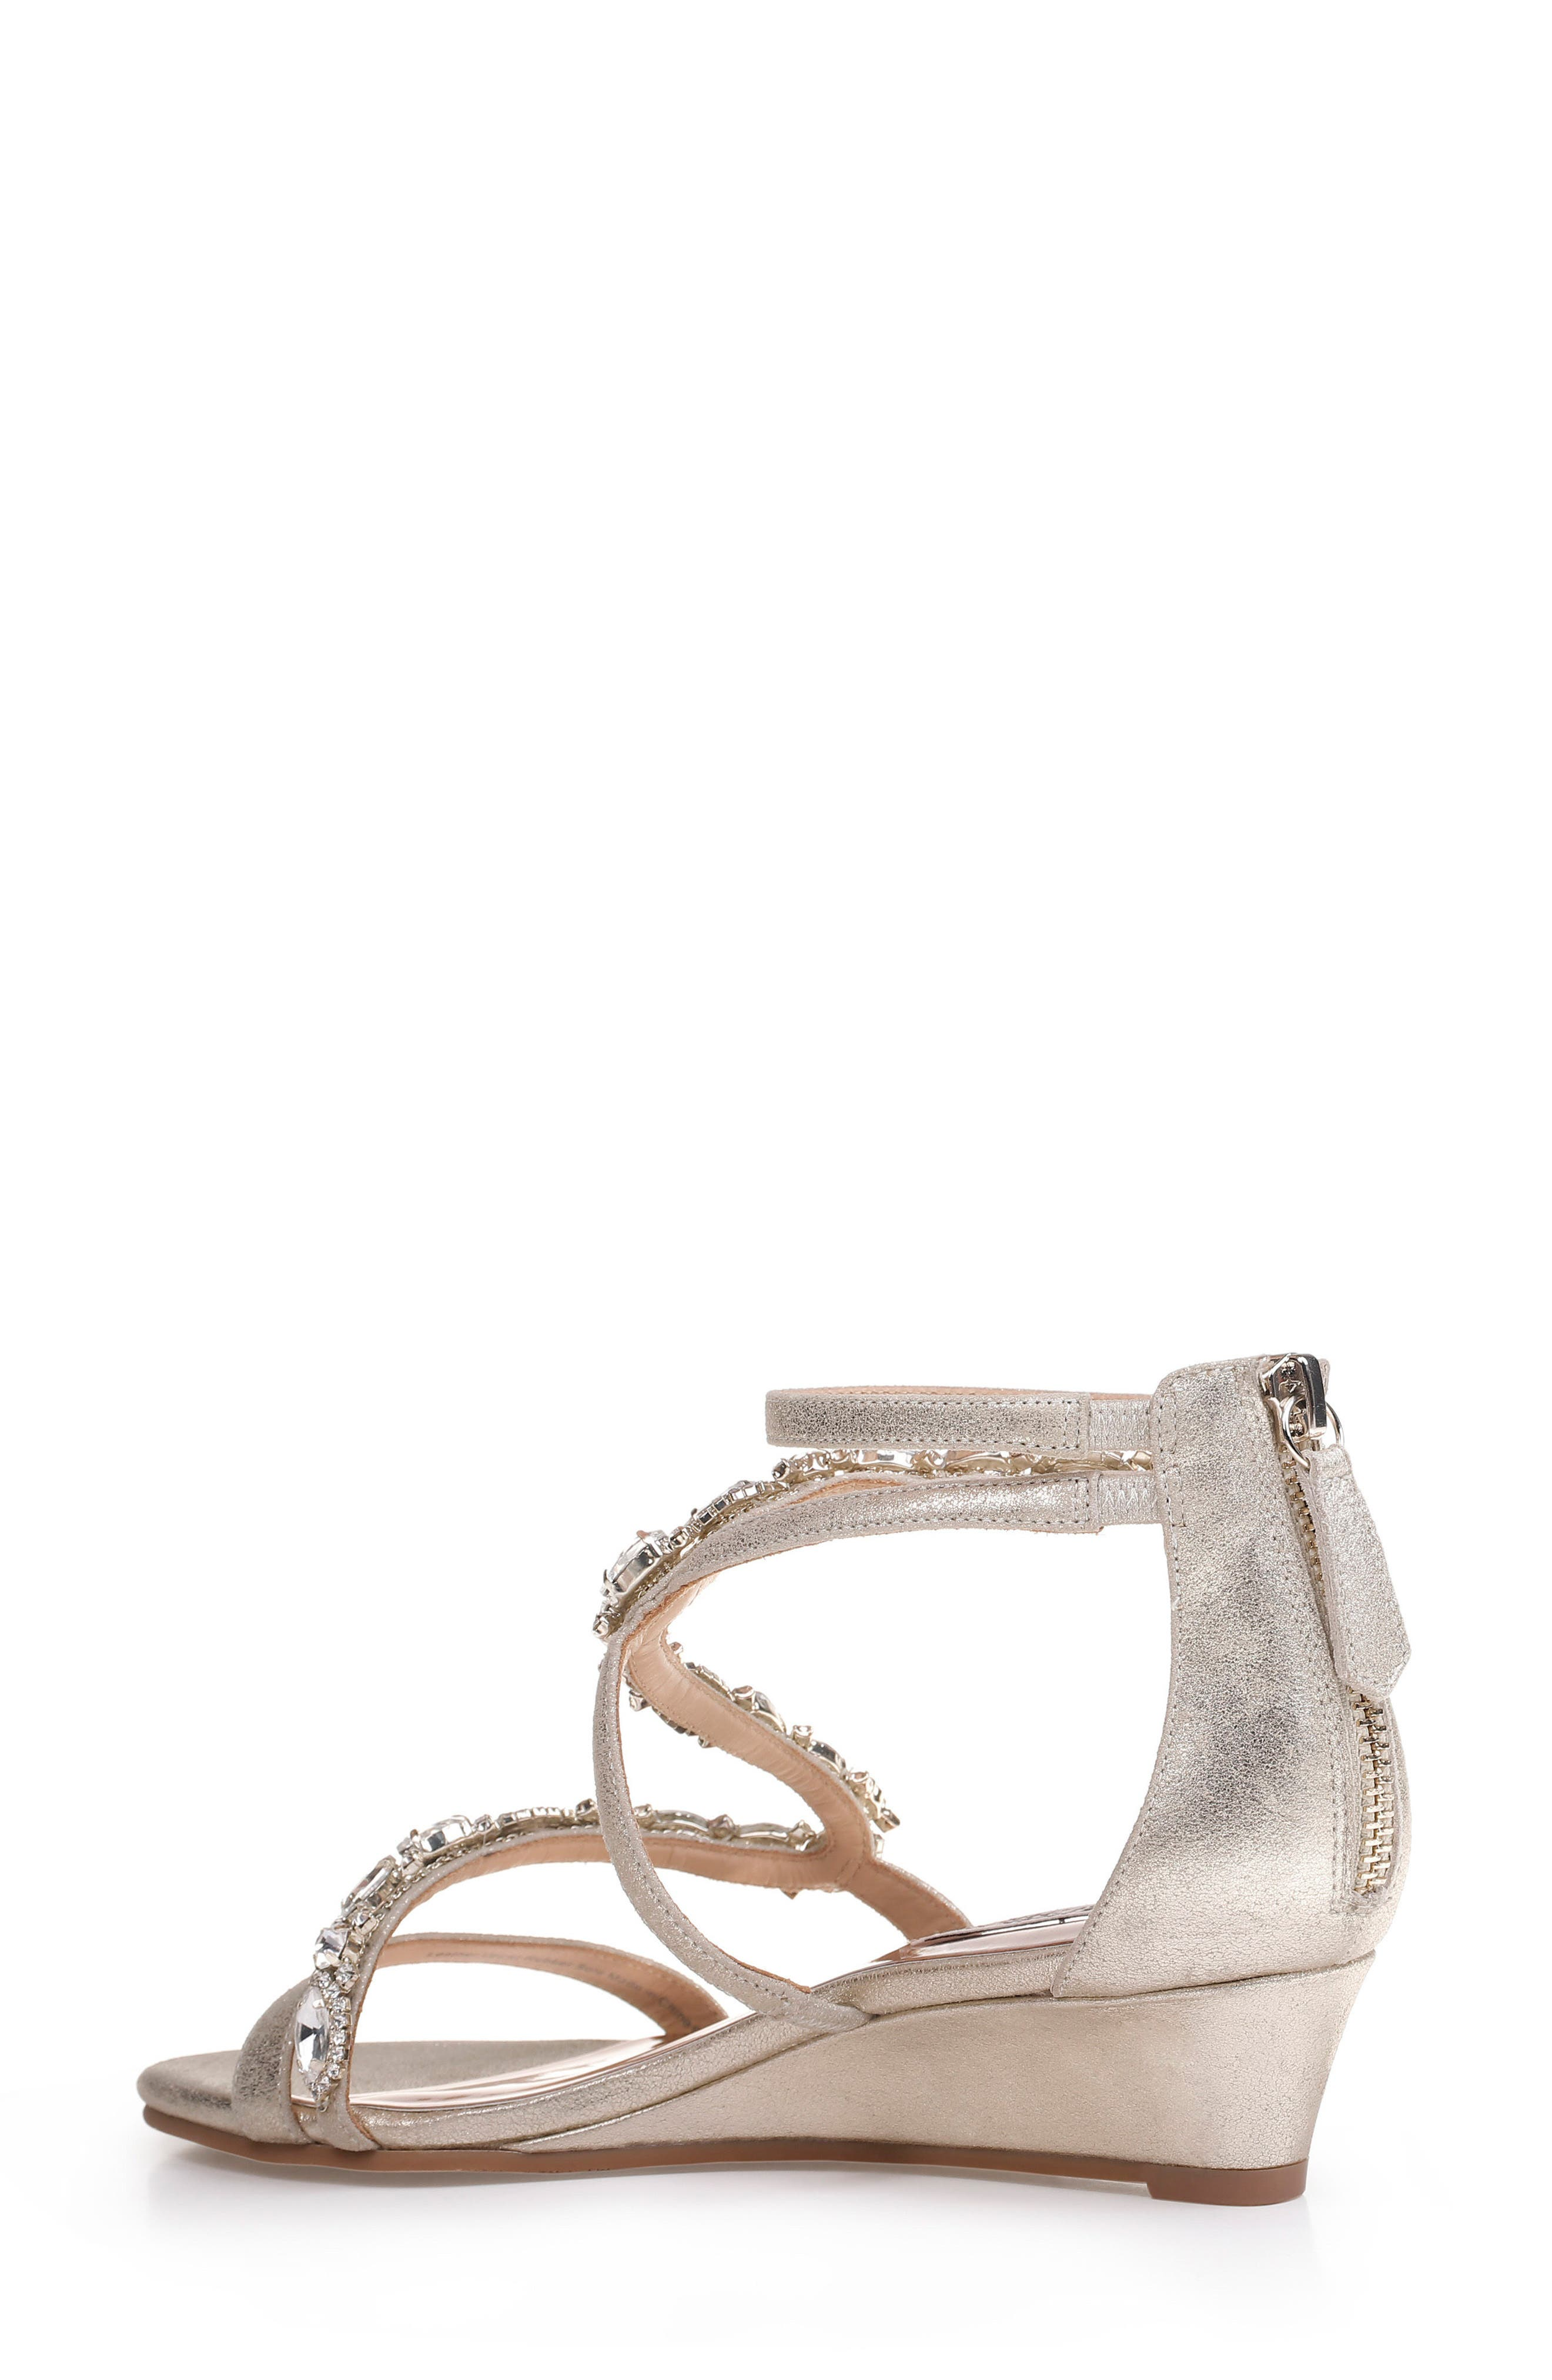 Sierra Strappy Wedge Sandal,                             Alternate thumbnail 2, color,                             Platino Suede